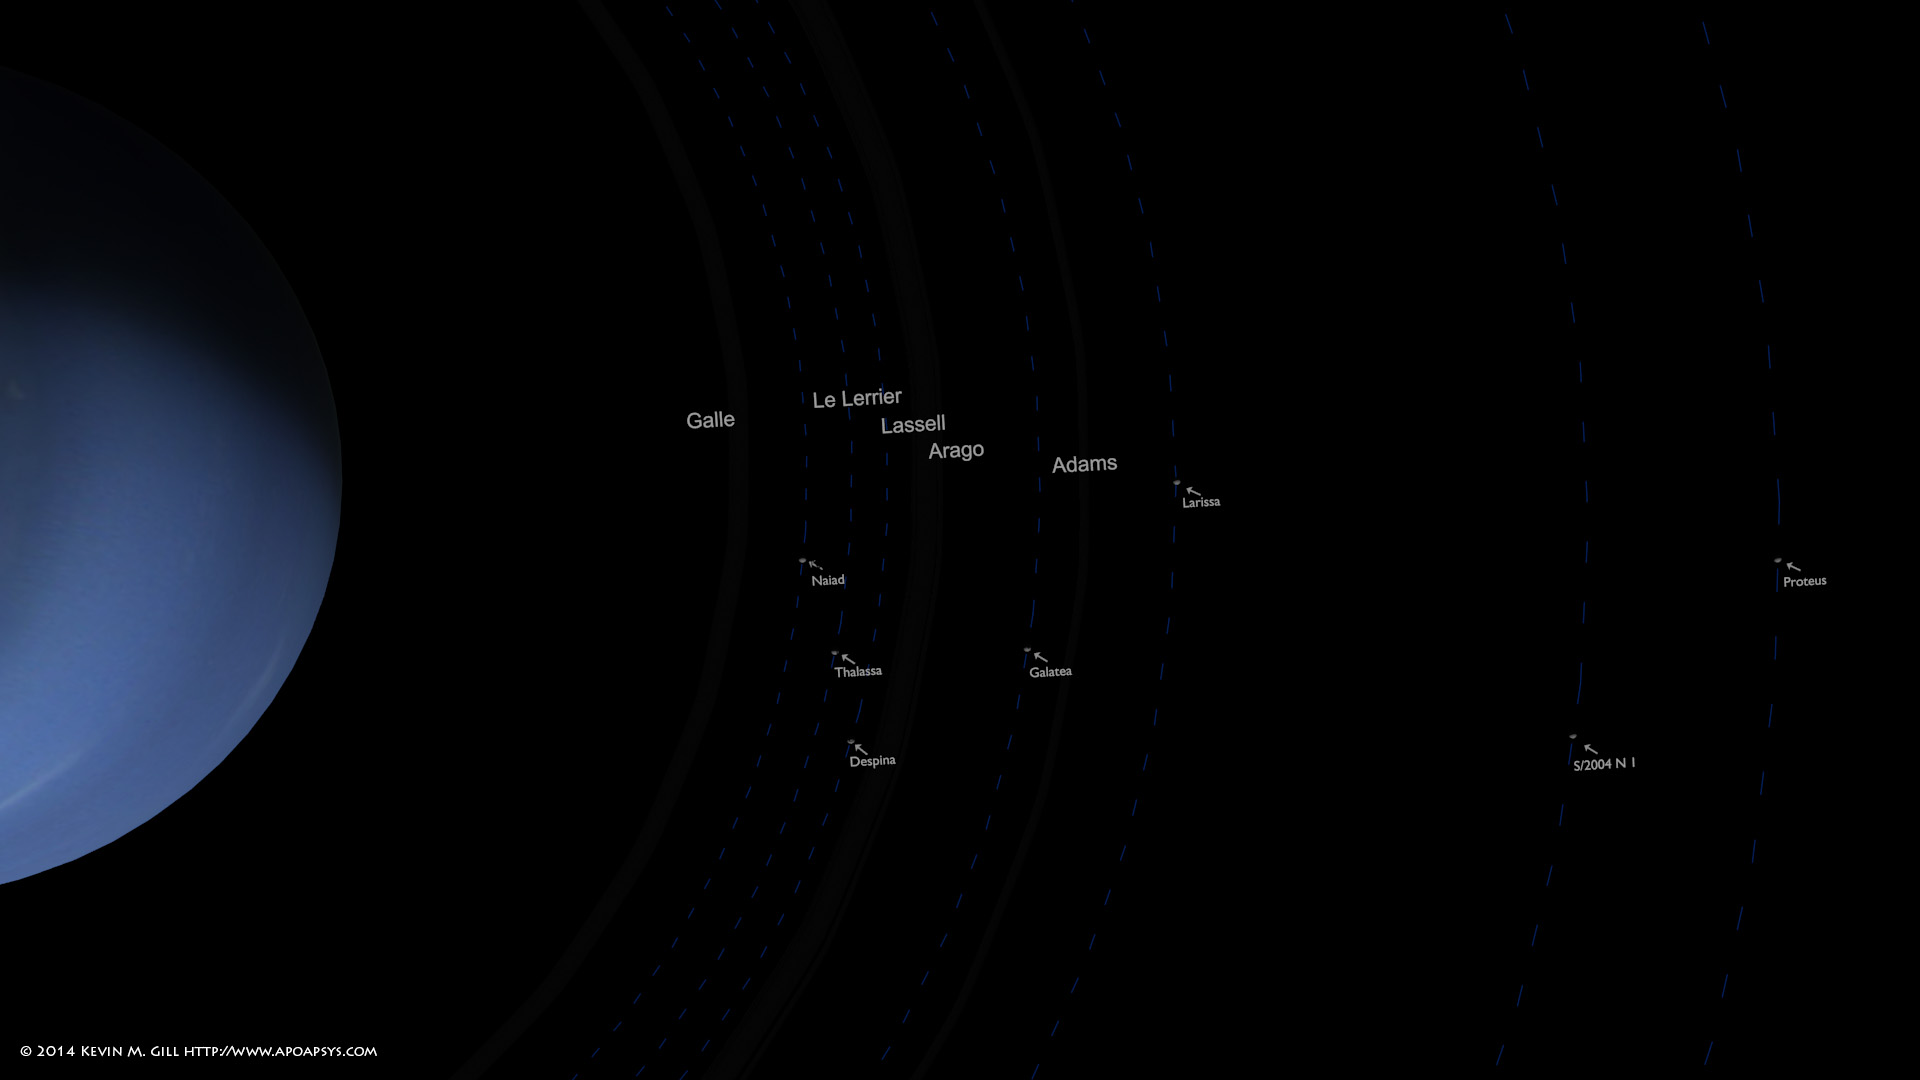 File:The Rings and Shepherd Moons of Neptune (14090740236 ...